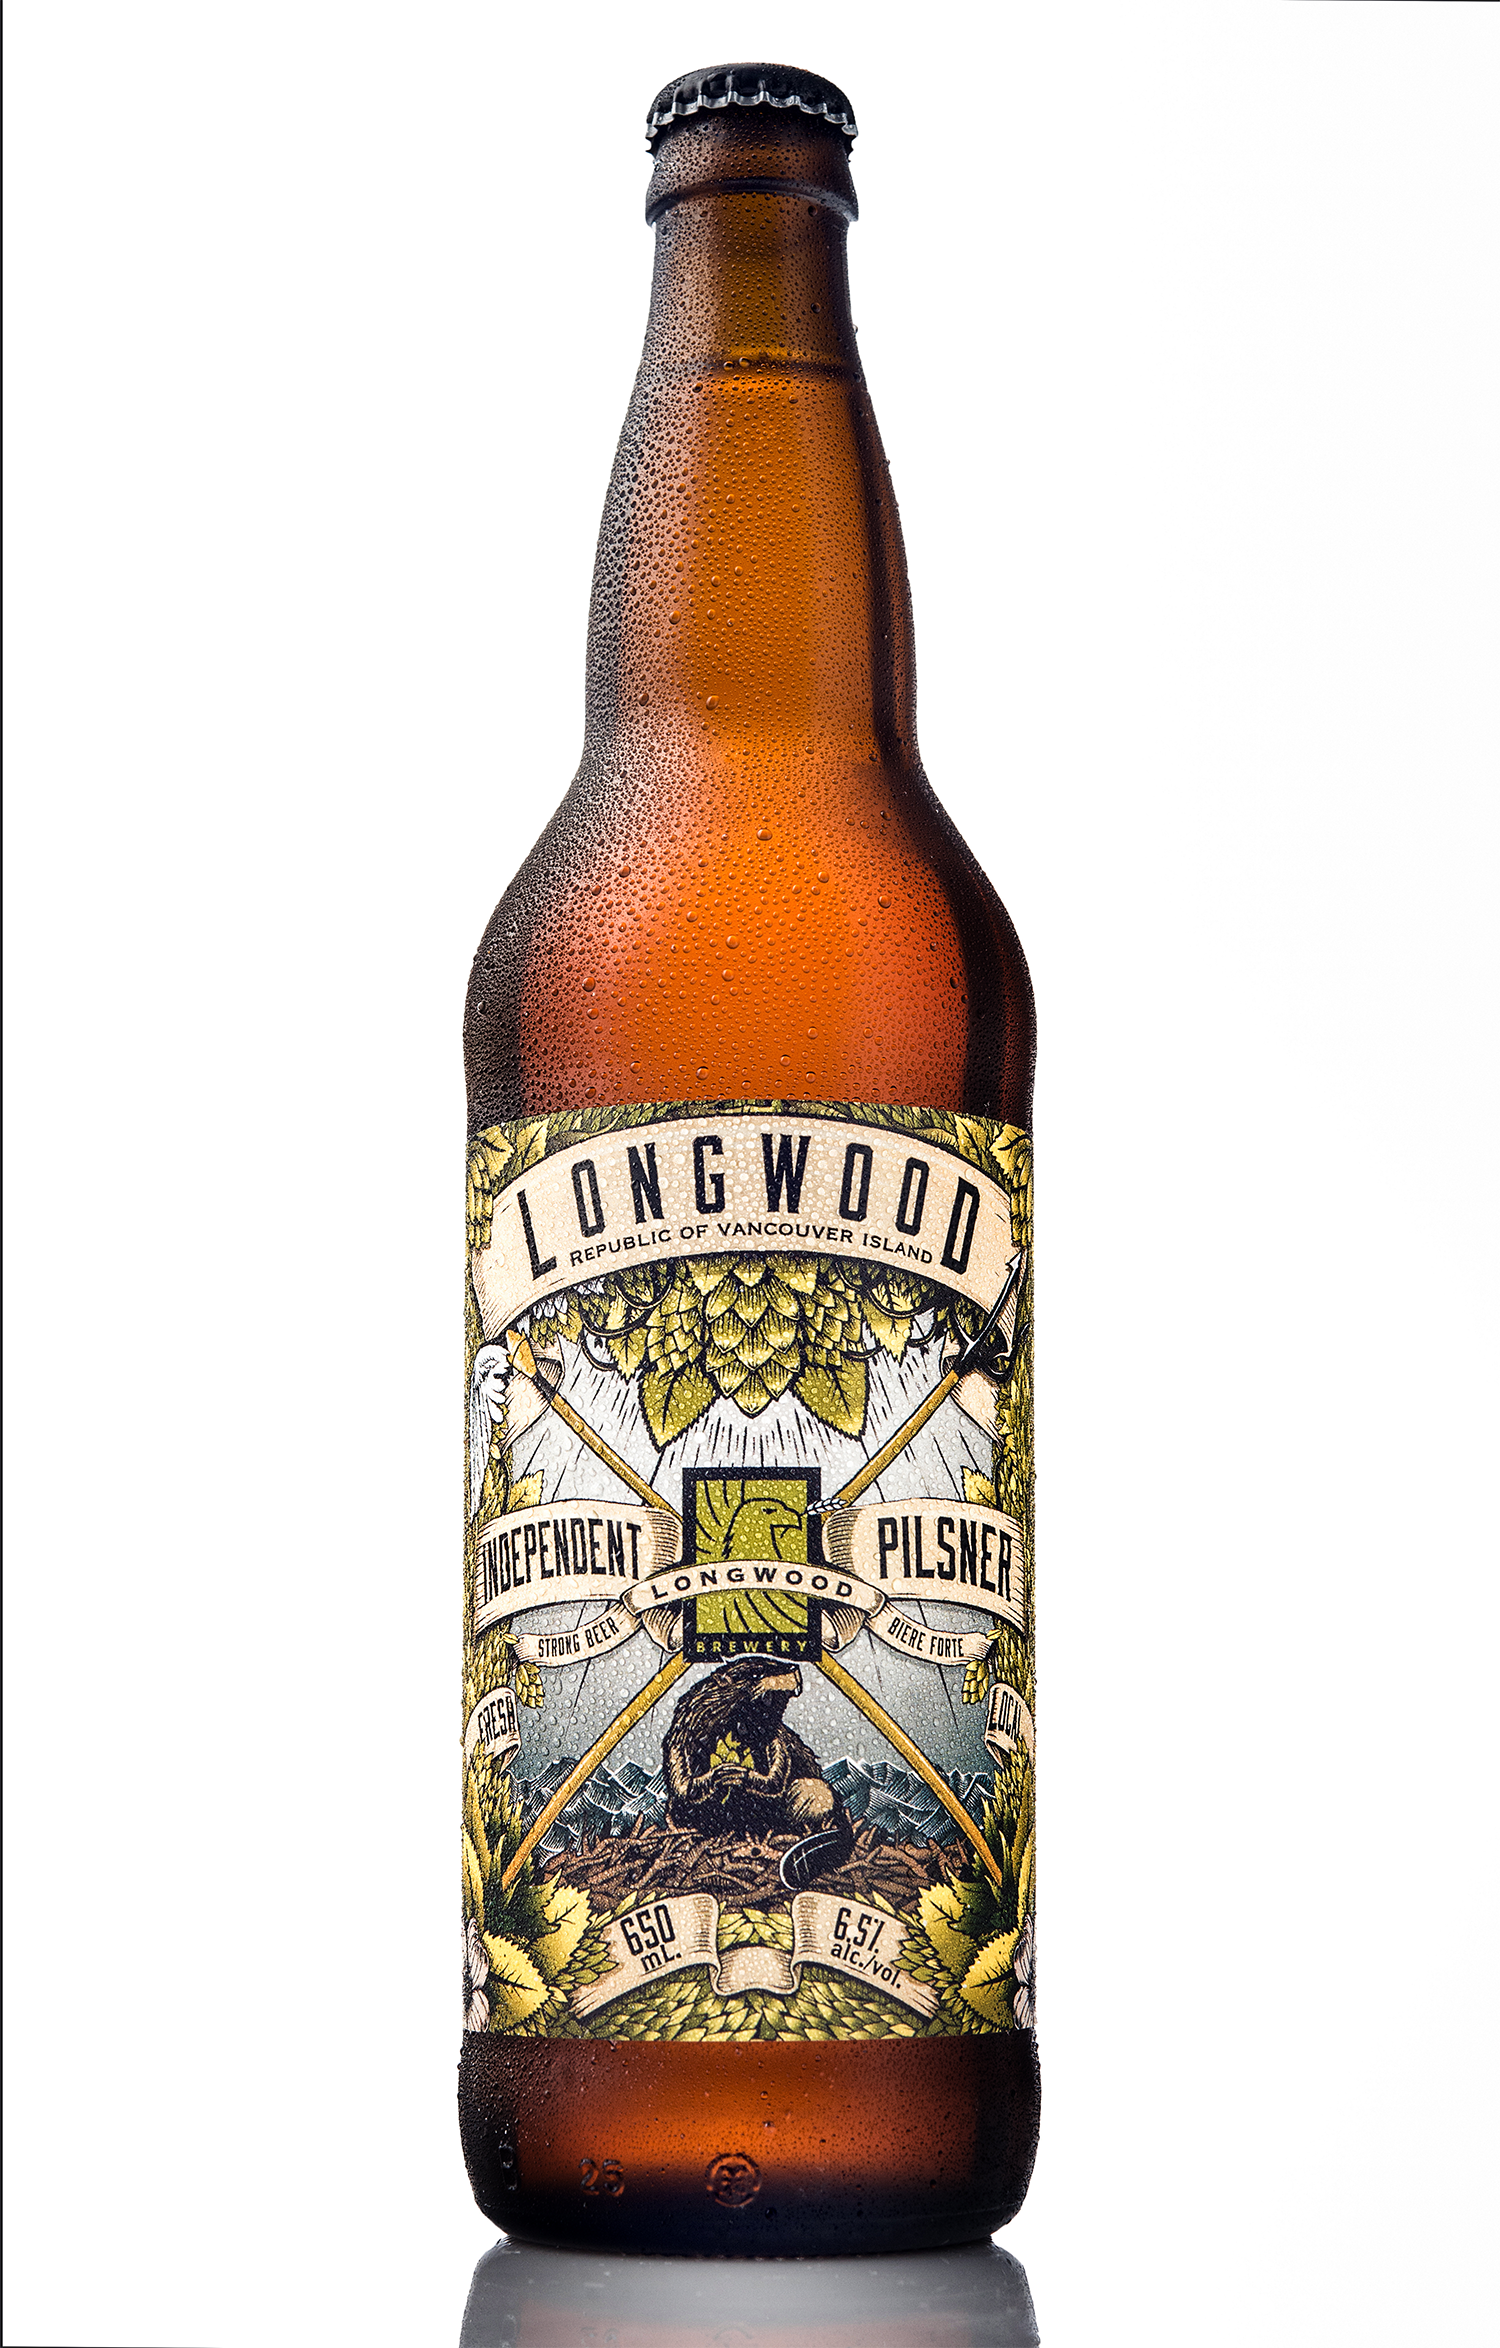 Packaging Design for Longwood Brewery's Independent Pilsner